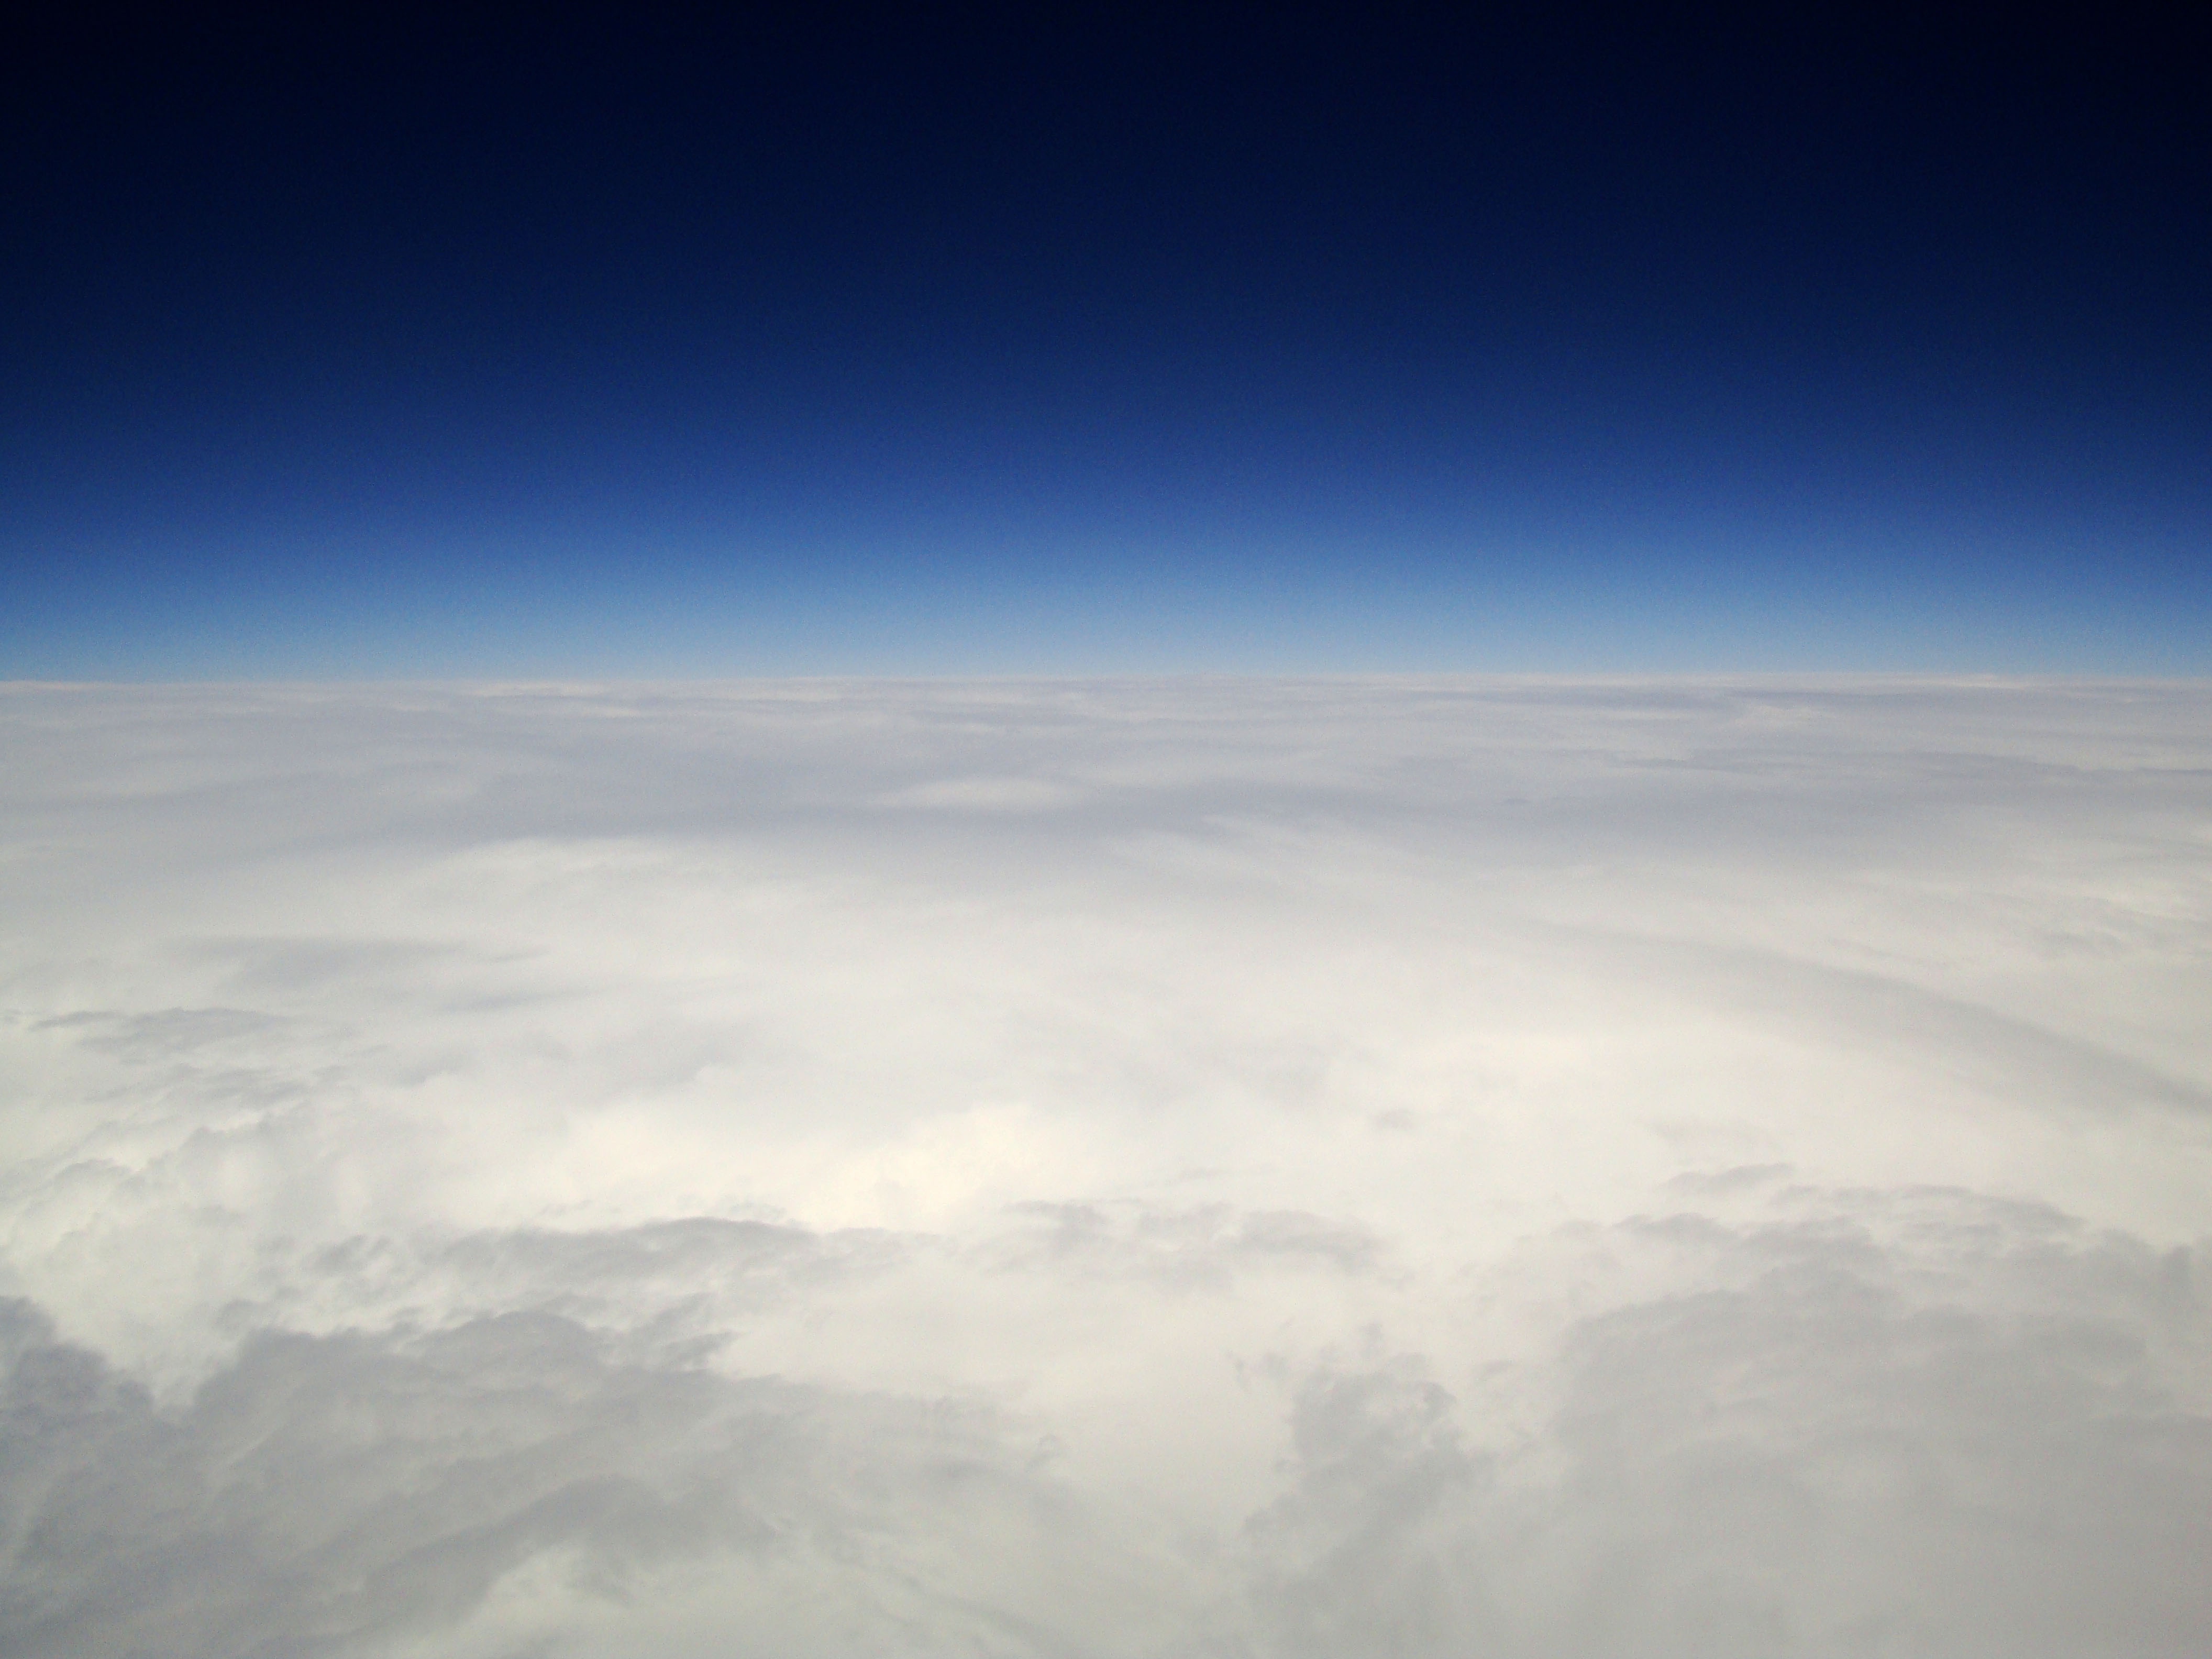 Textures Clouds Formations Sky Storms Weather Phenomena Aerial Views 24